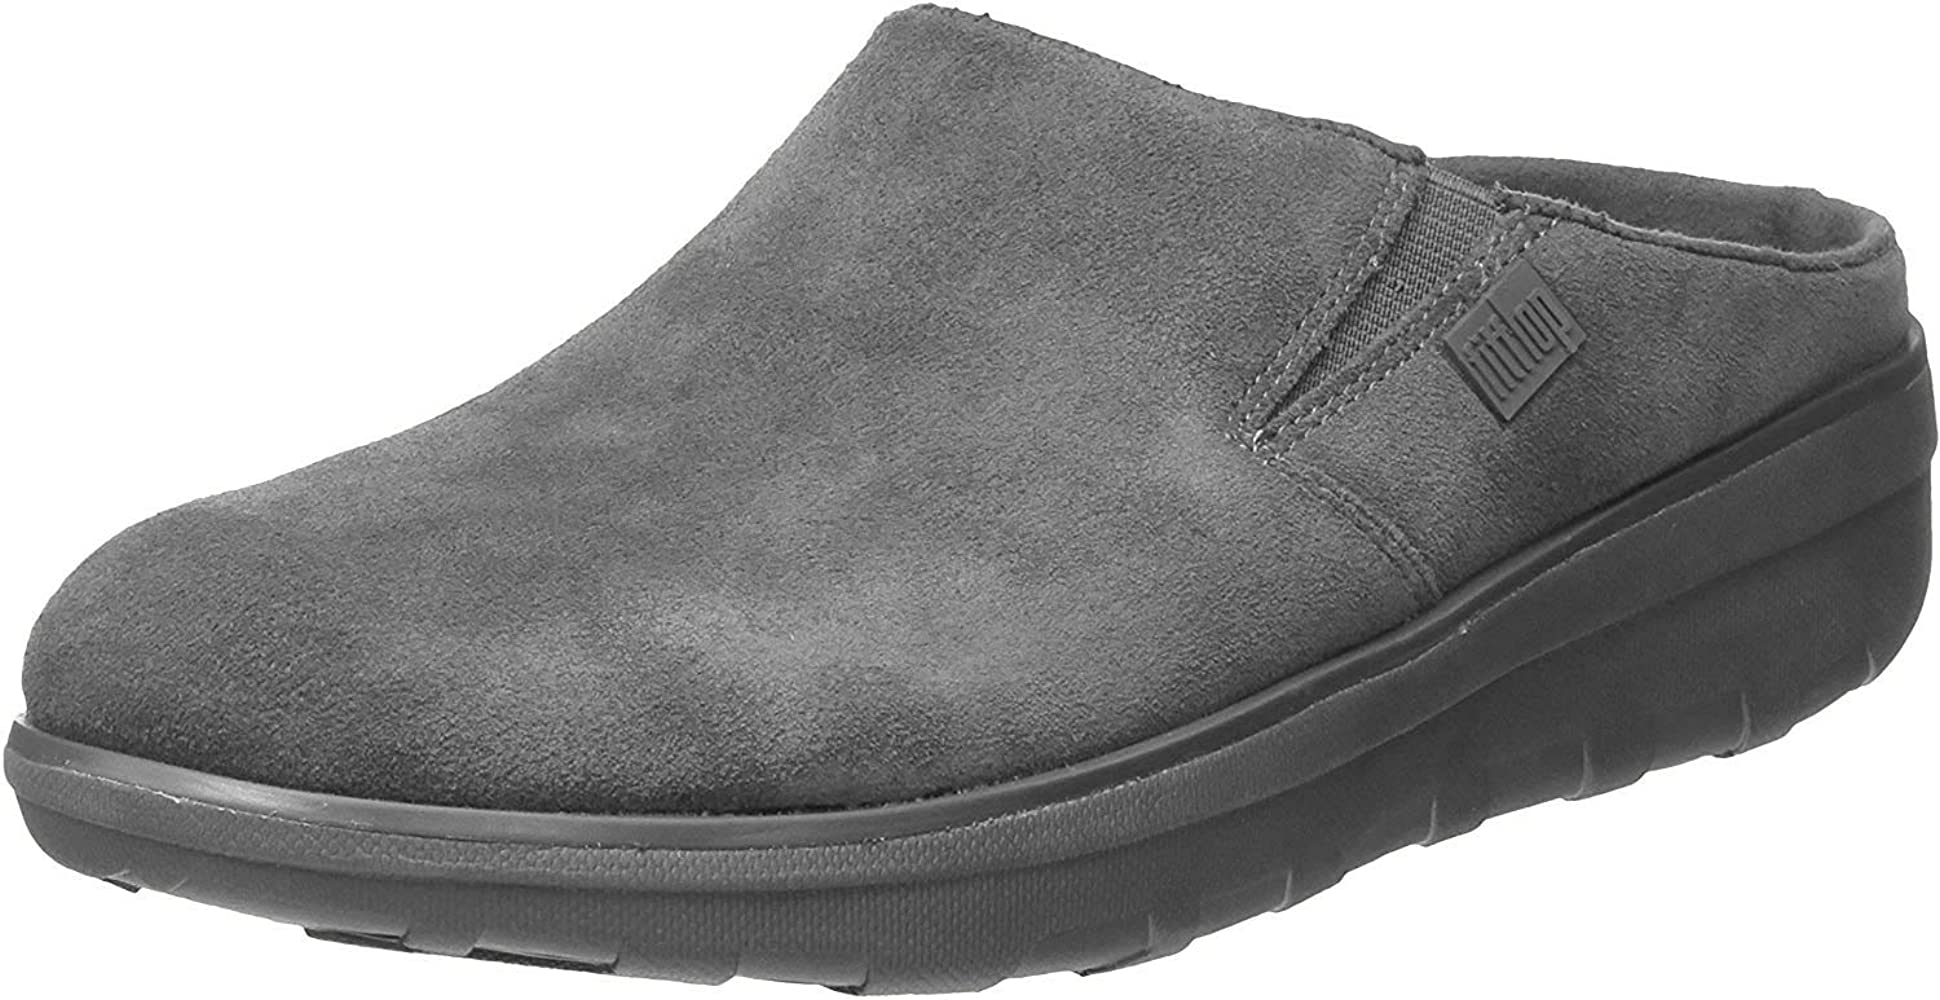 Loaff Tm Suede Clog Slip On Trainers